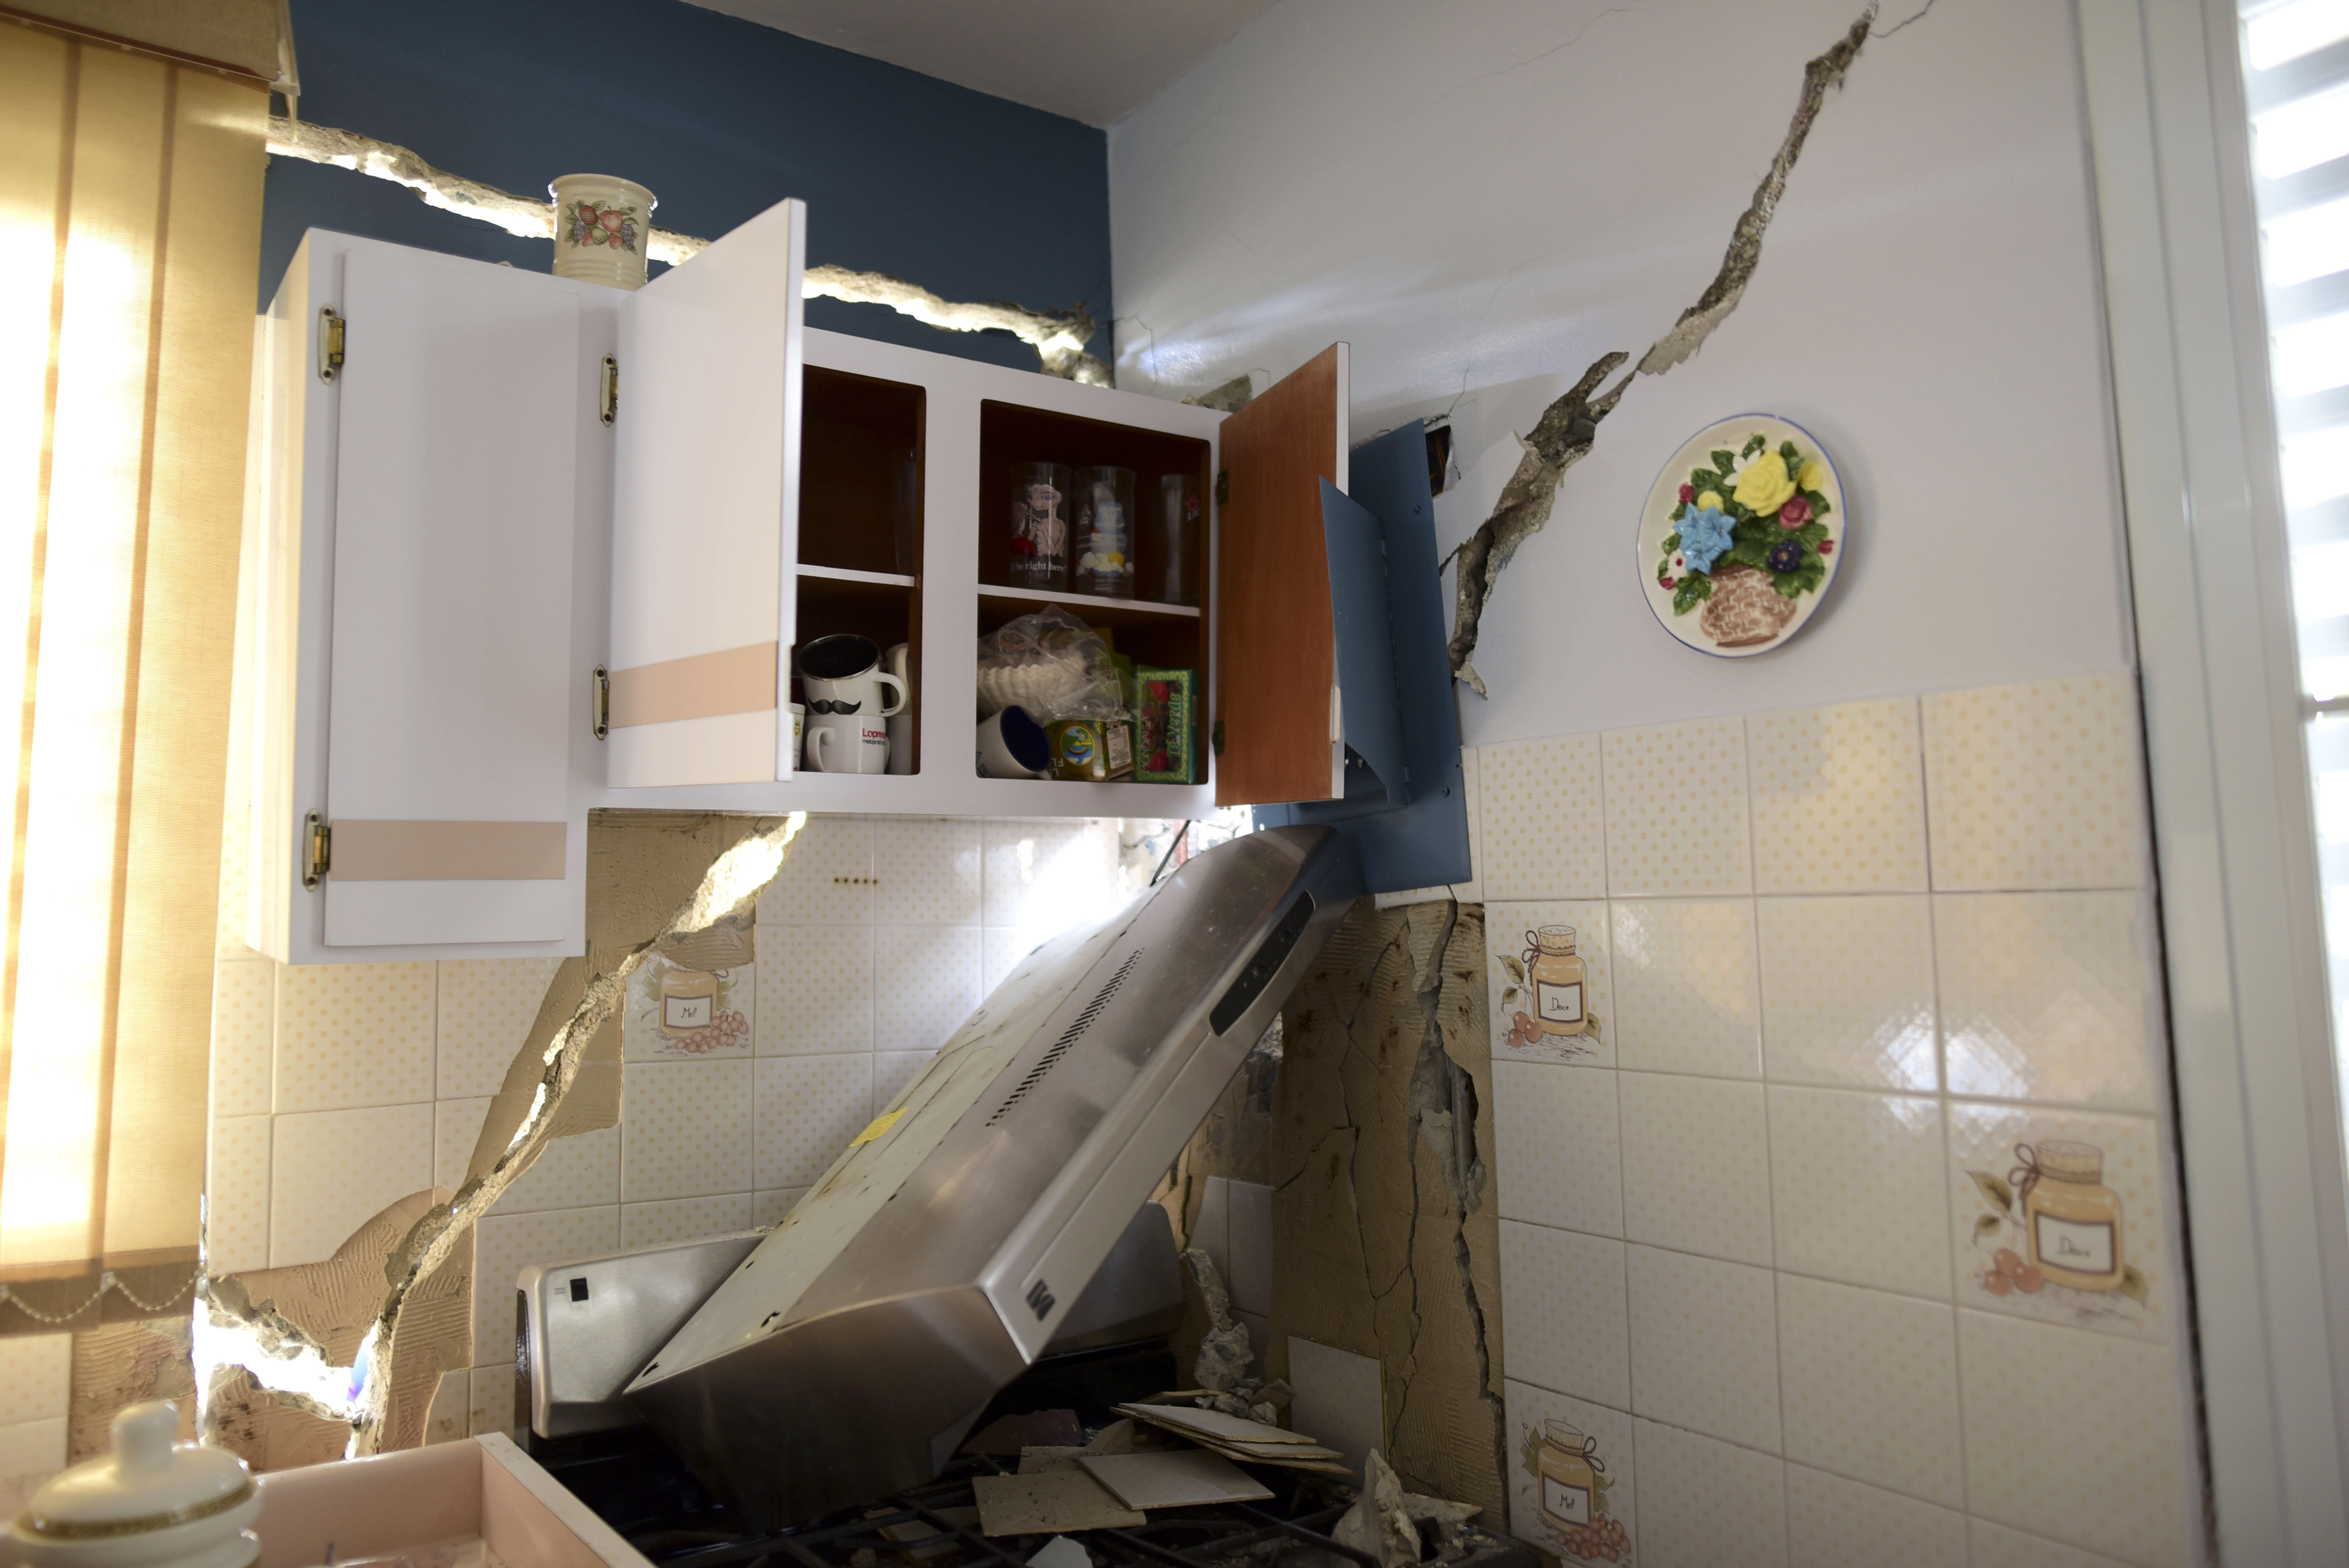 The house of William Mercuchi is damaged after the previous day's magnitude 6.4 earthquake in Yauco, Puerto Rico, Wednesday, Jan. 8, 2020. More than 250,000 Puerto Ricans remained without water on Wednesday and another half a million without power, which also affected telecommunications. (AP Photo/Carlos Giusti)